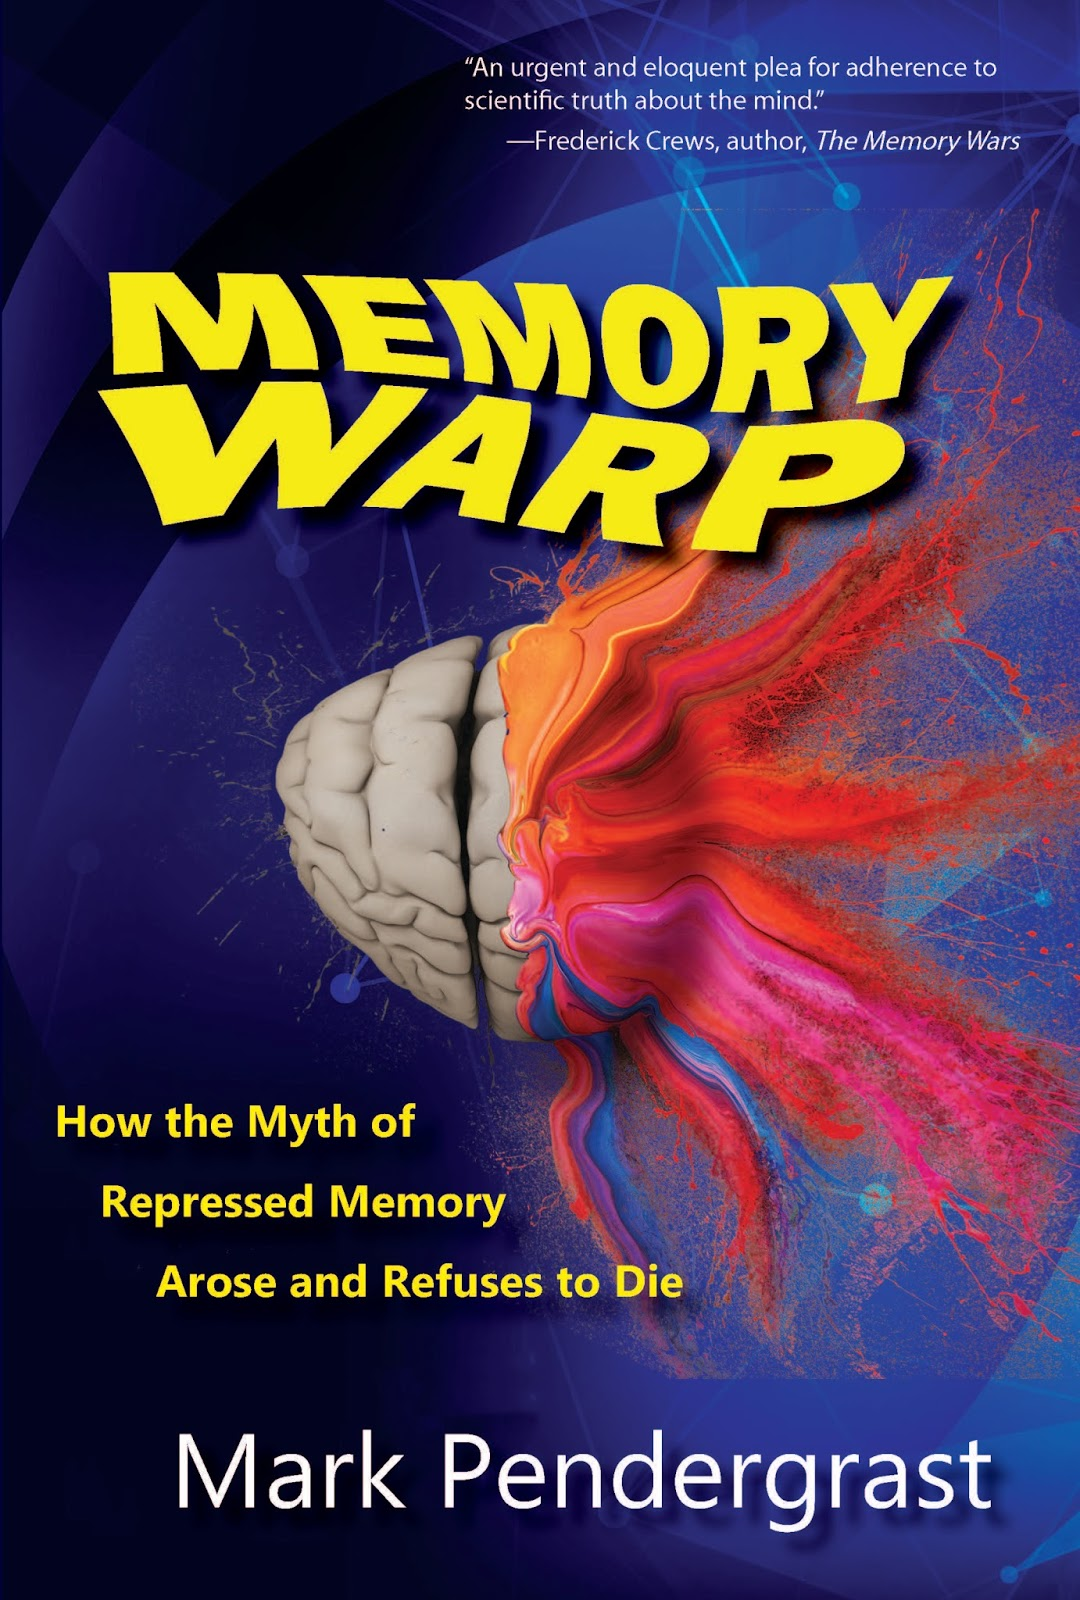 the validity of recovered memories Repressed memories are memories that have been unconsciously blocked due to the memory being associated with a high level of stress or trauma the theory postulates that even though the individual cannot recall the memory, it may still be affecting them subconsciously, and that these memories can emerge later into.